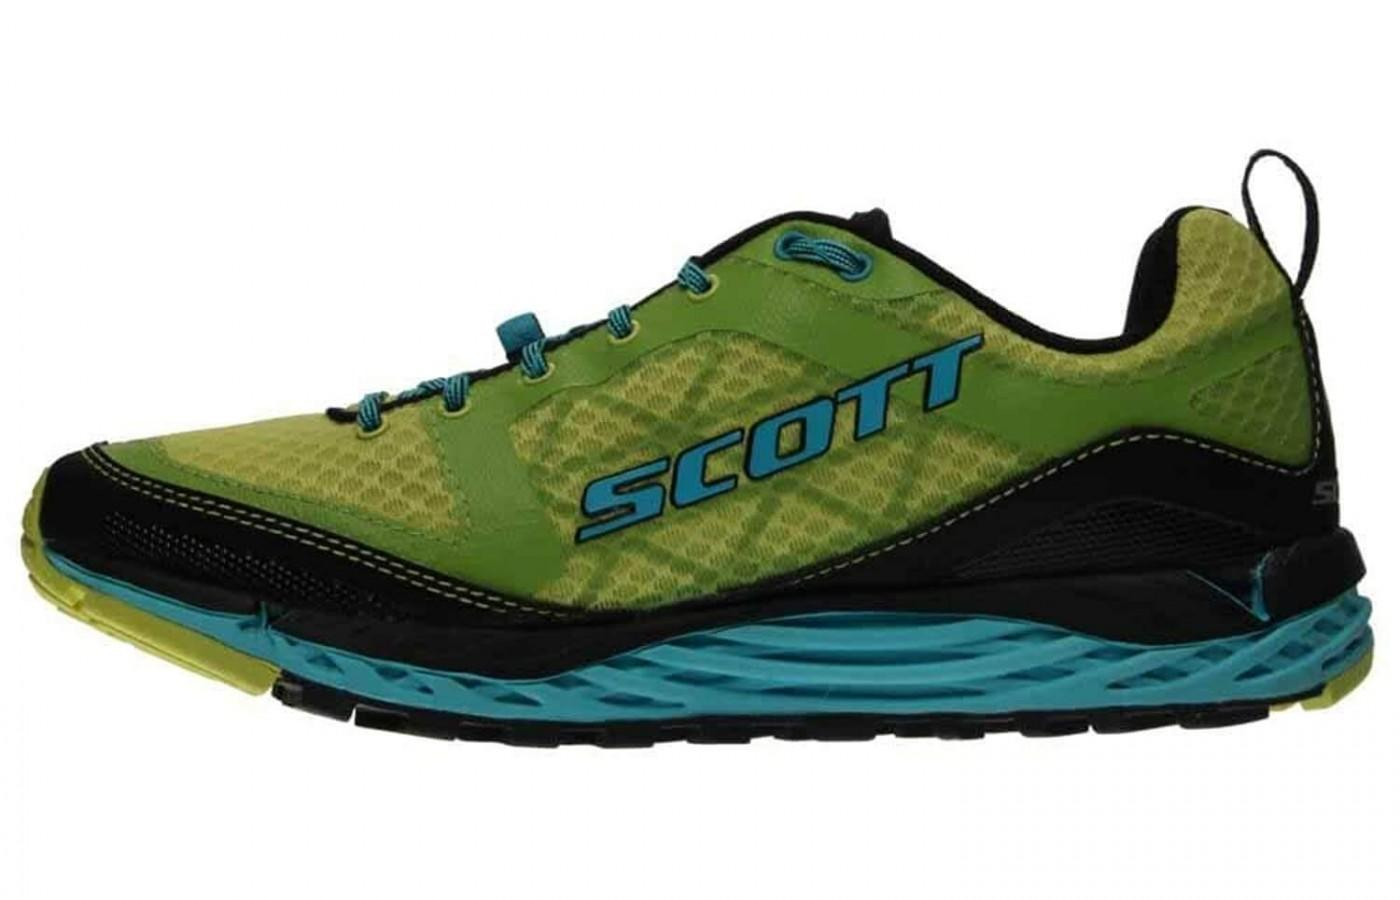 The eRide midsole promotes a natural movement in the gait cycle.